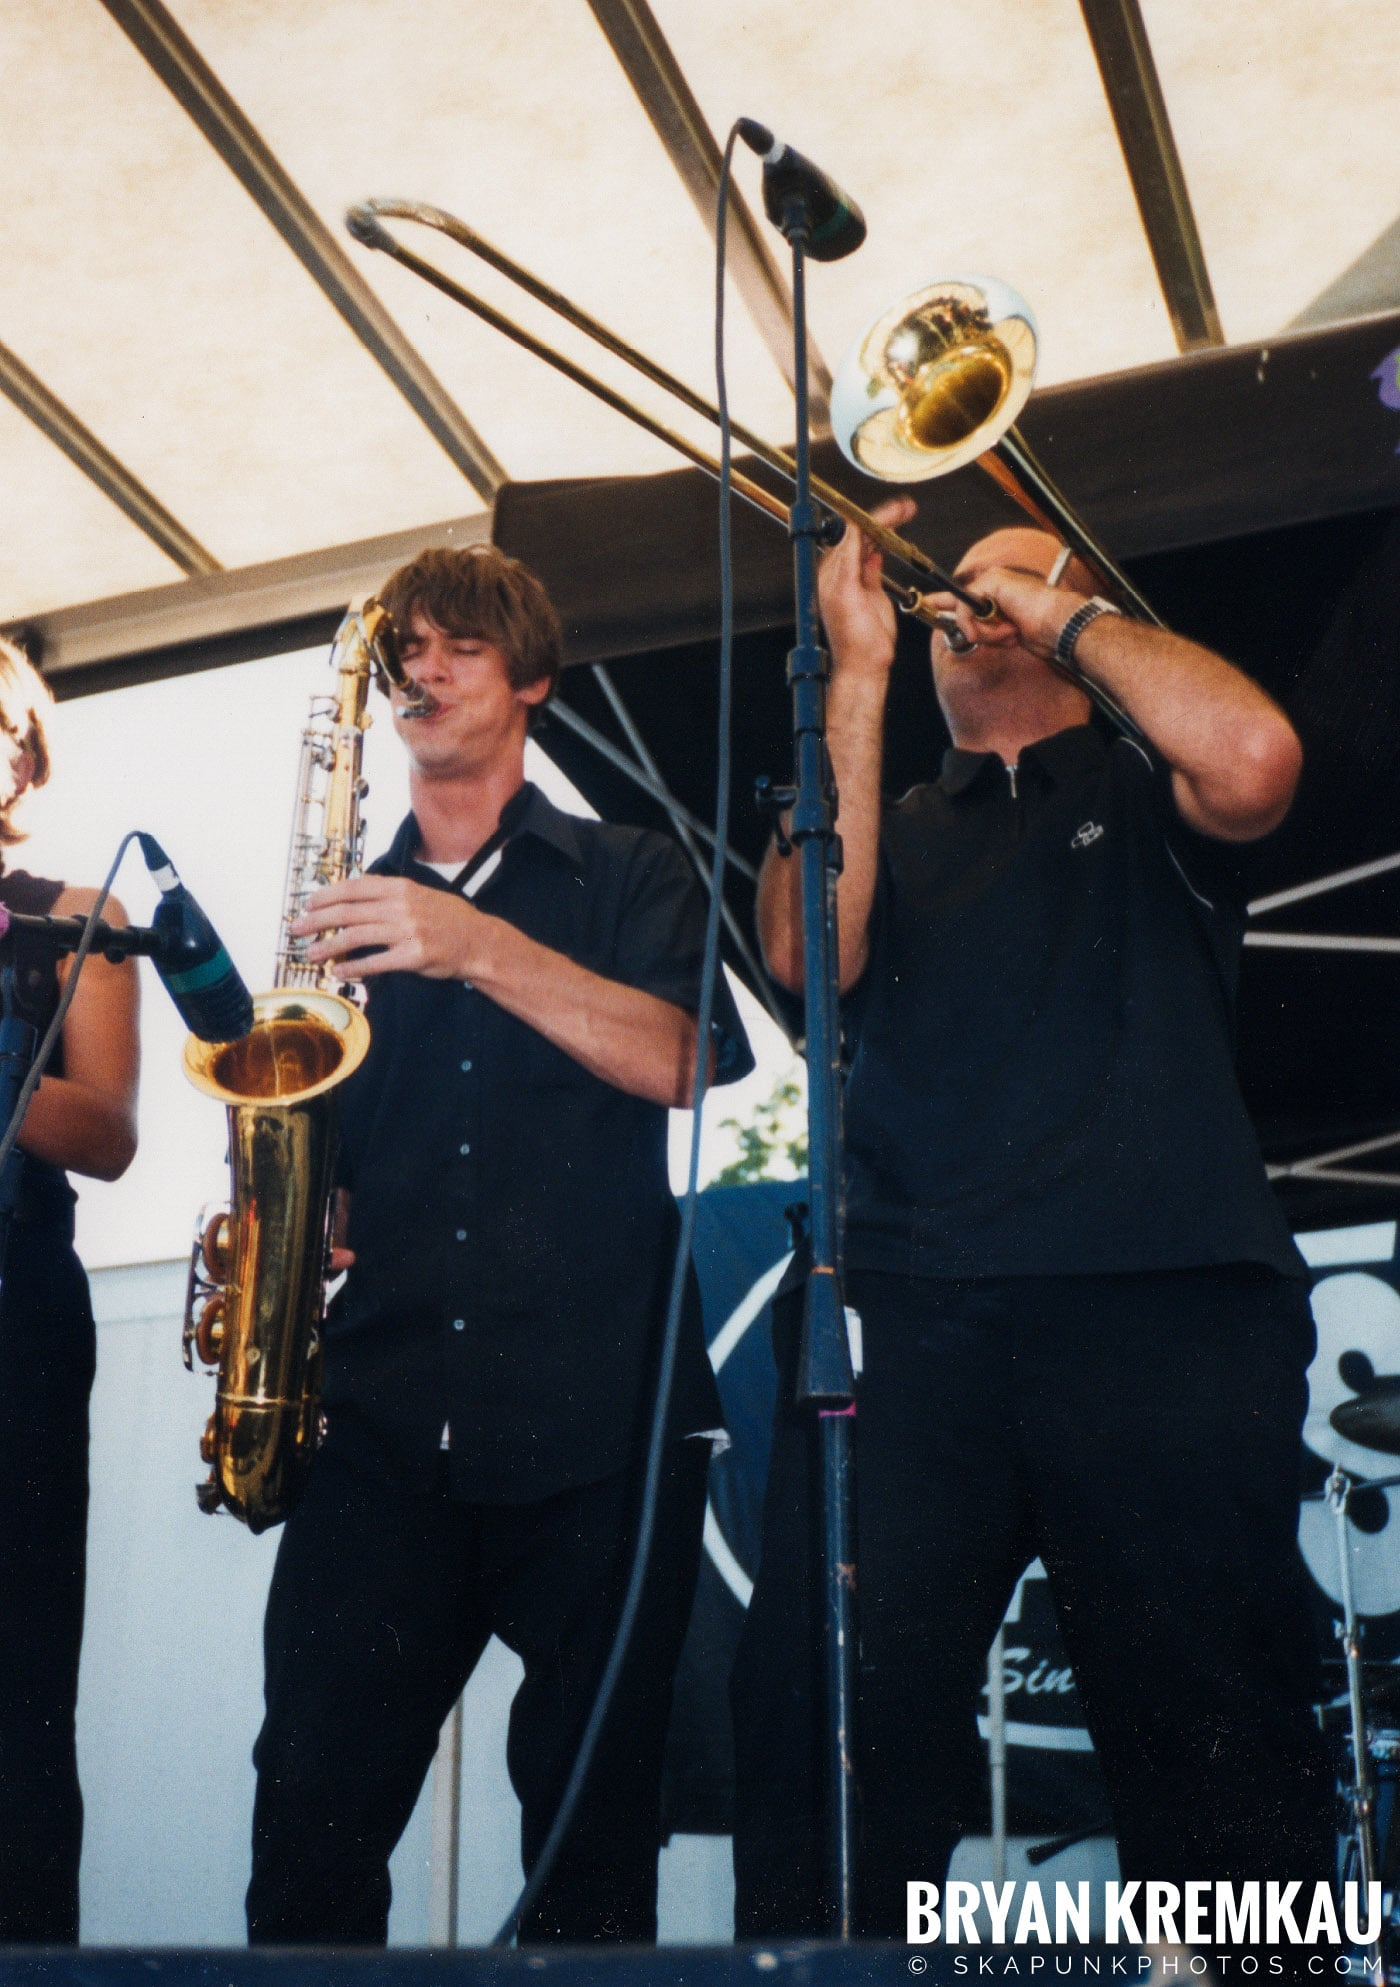 The Smooths @ Vans Warped Tour, Randall's Island, NYC - 8.1.98 (12)